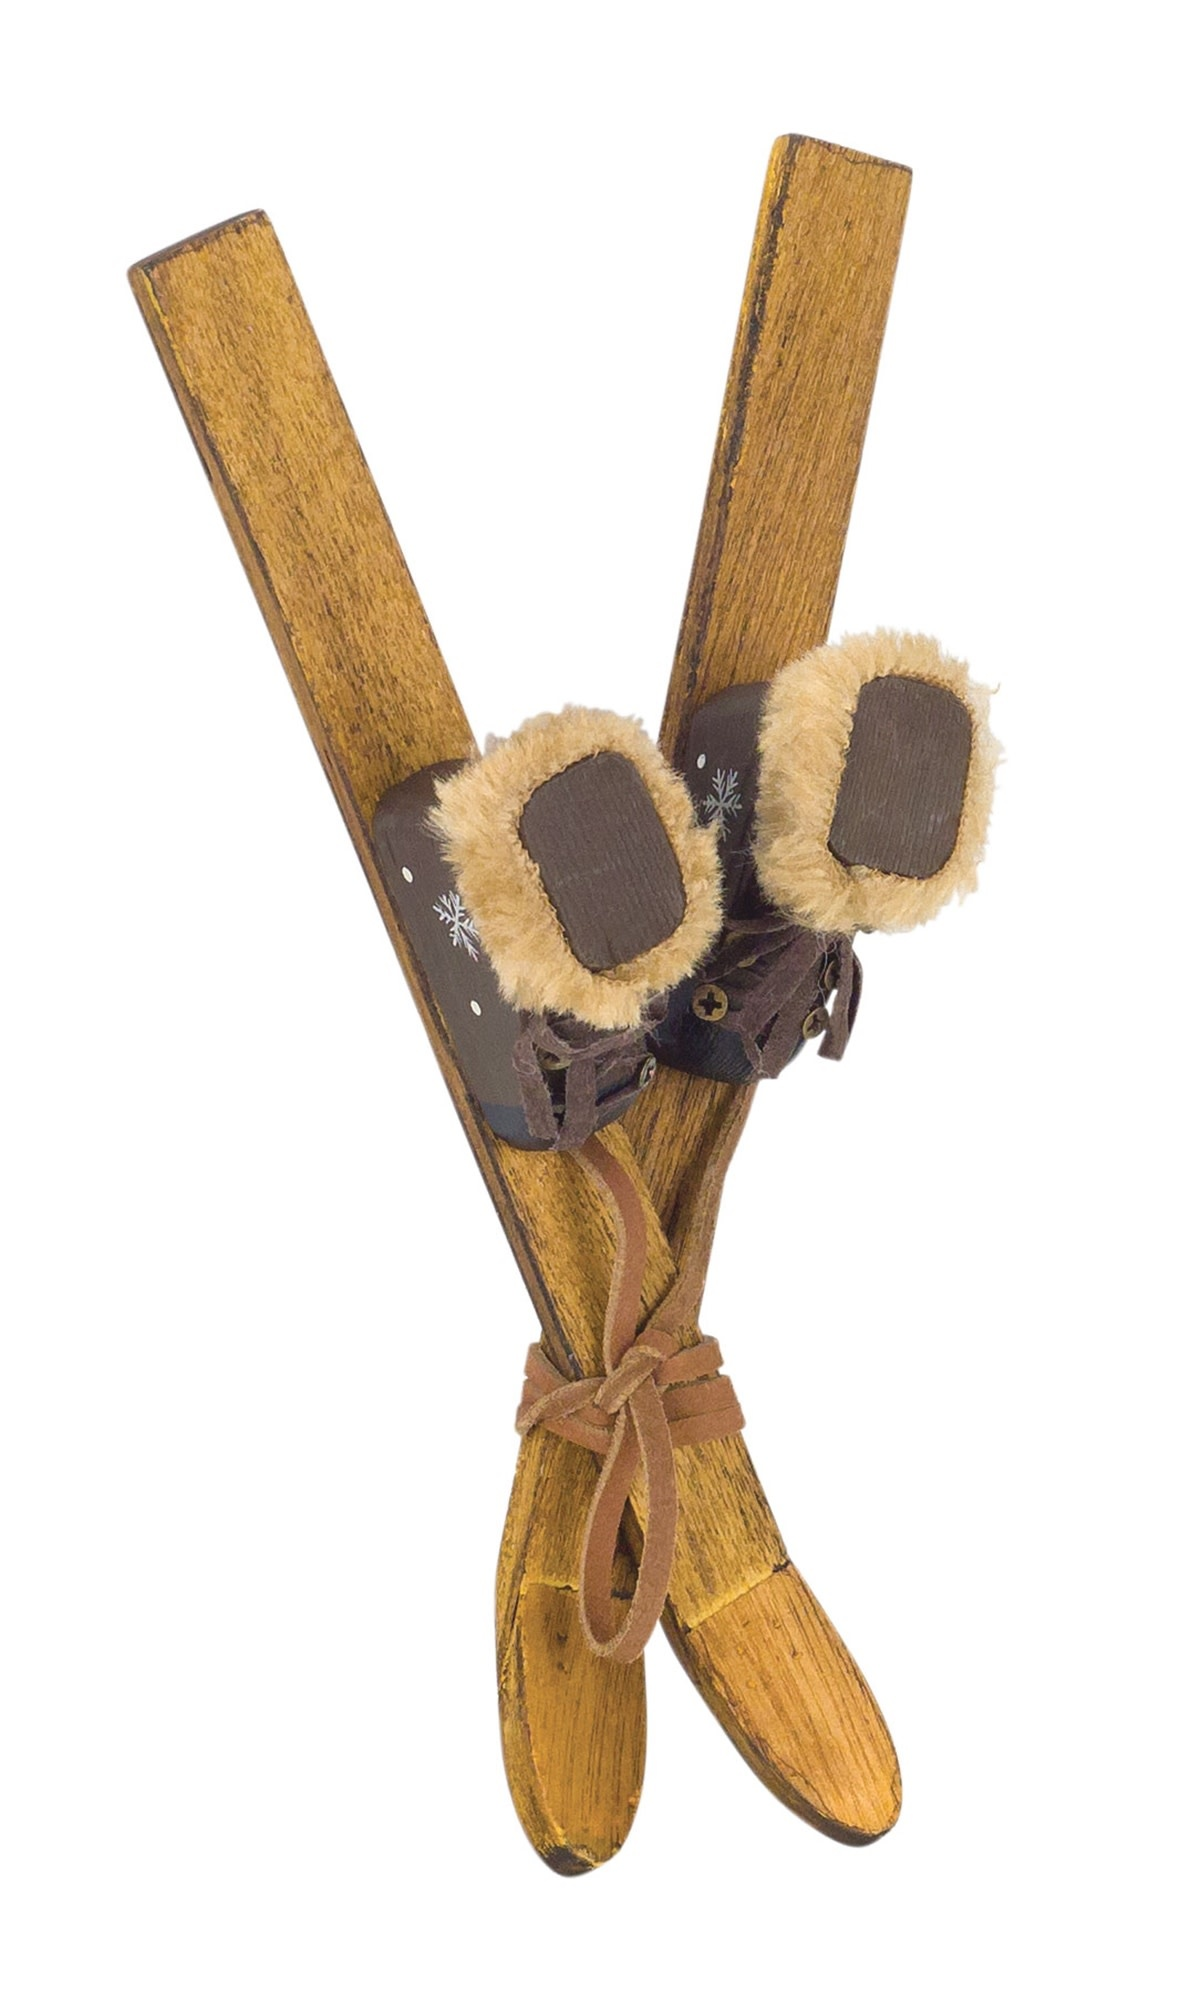 SKIS AND BOOTS ORNAMENT